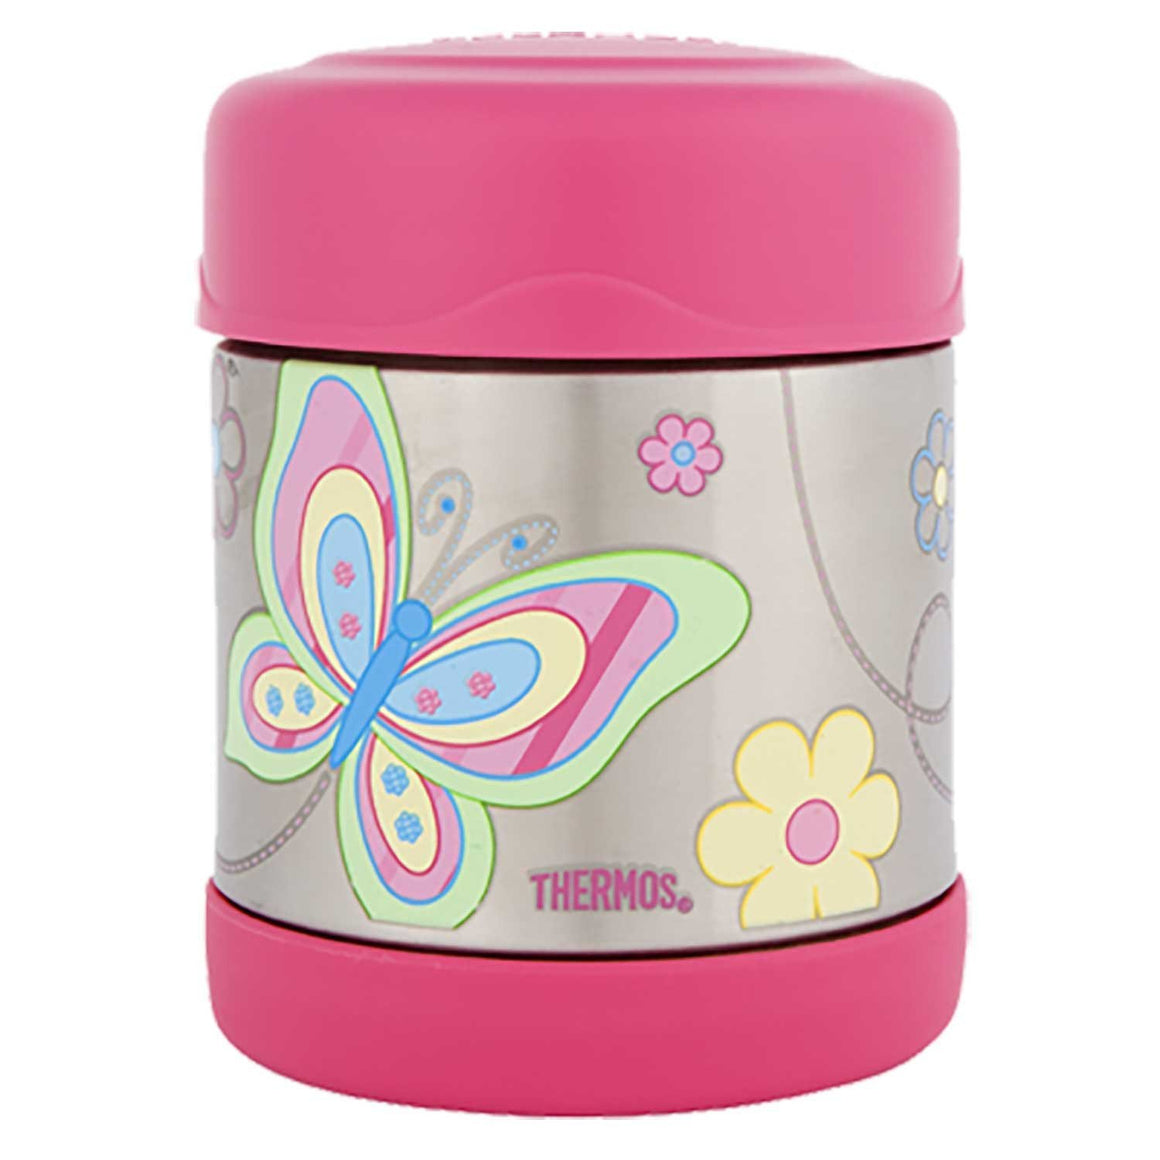 Thermos Funtainer Stainless Steel Vacuum Insulated Food Jar 290ml Butterfly - Stuff-n-Things